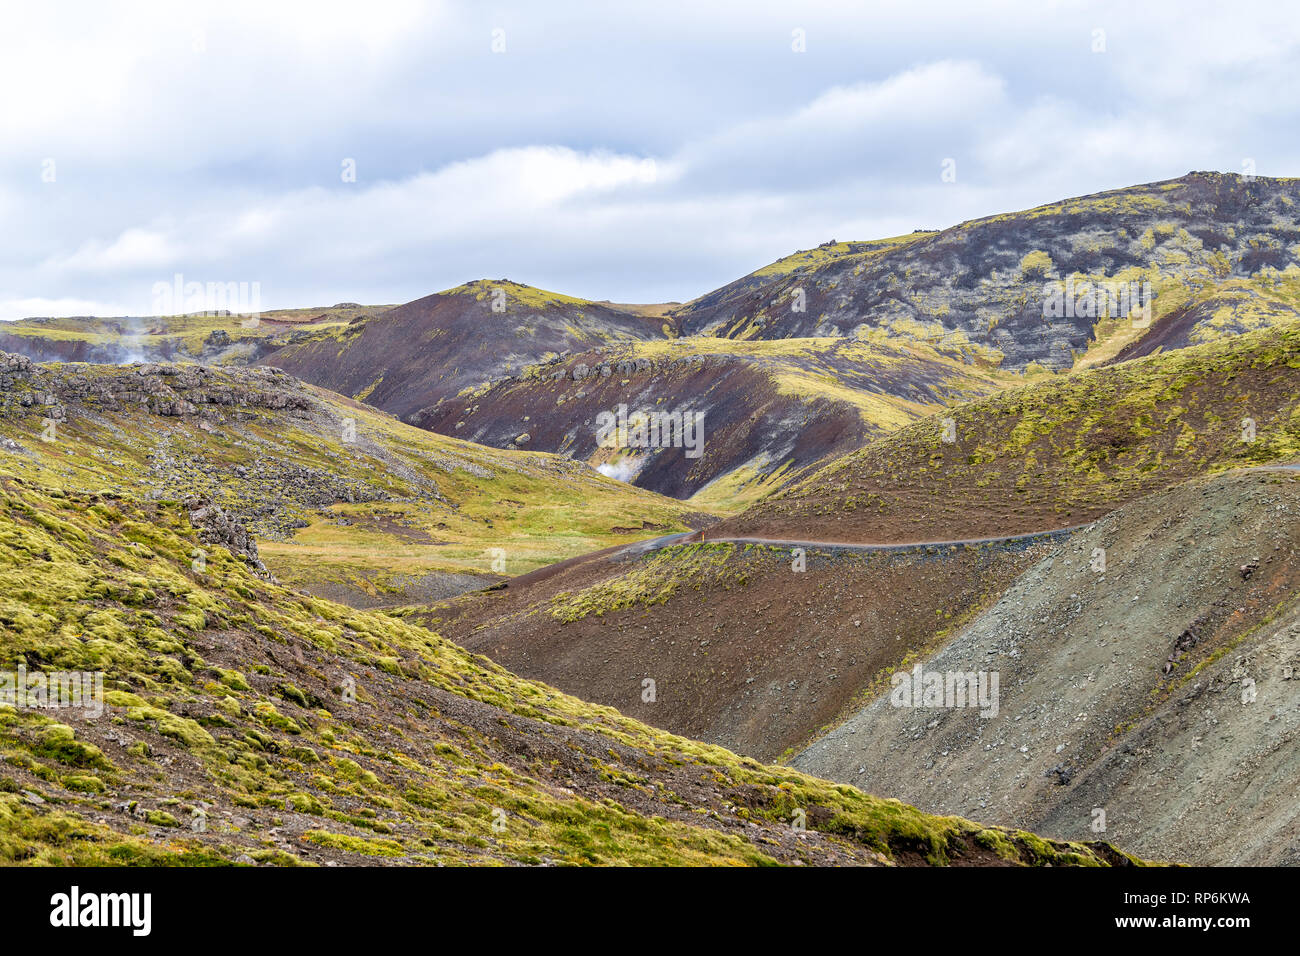 Reykjadalur, Iceland Hveragerdi Hot Springs steam fumarole vents during day in golden circle with nobody and barren rocky landscape - Stock Image